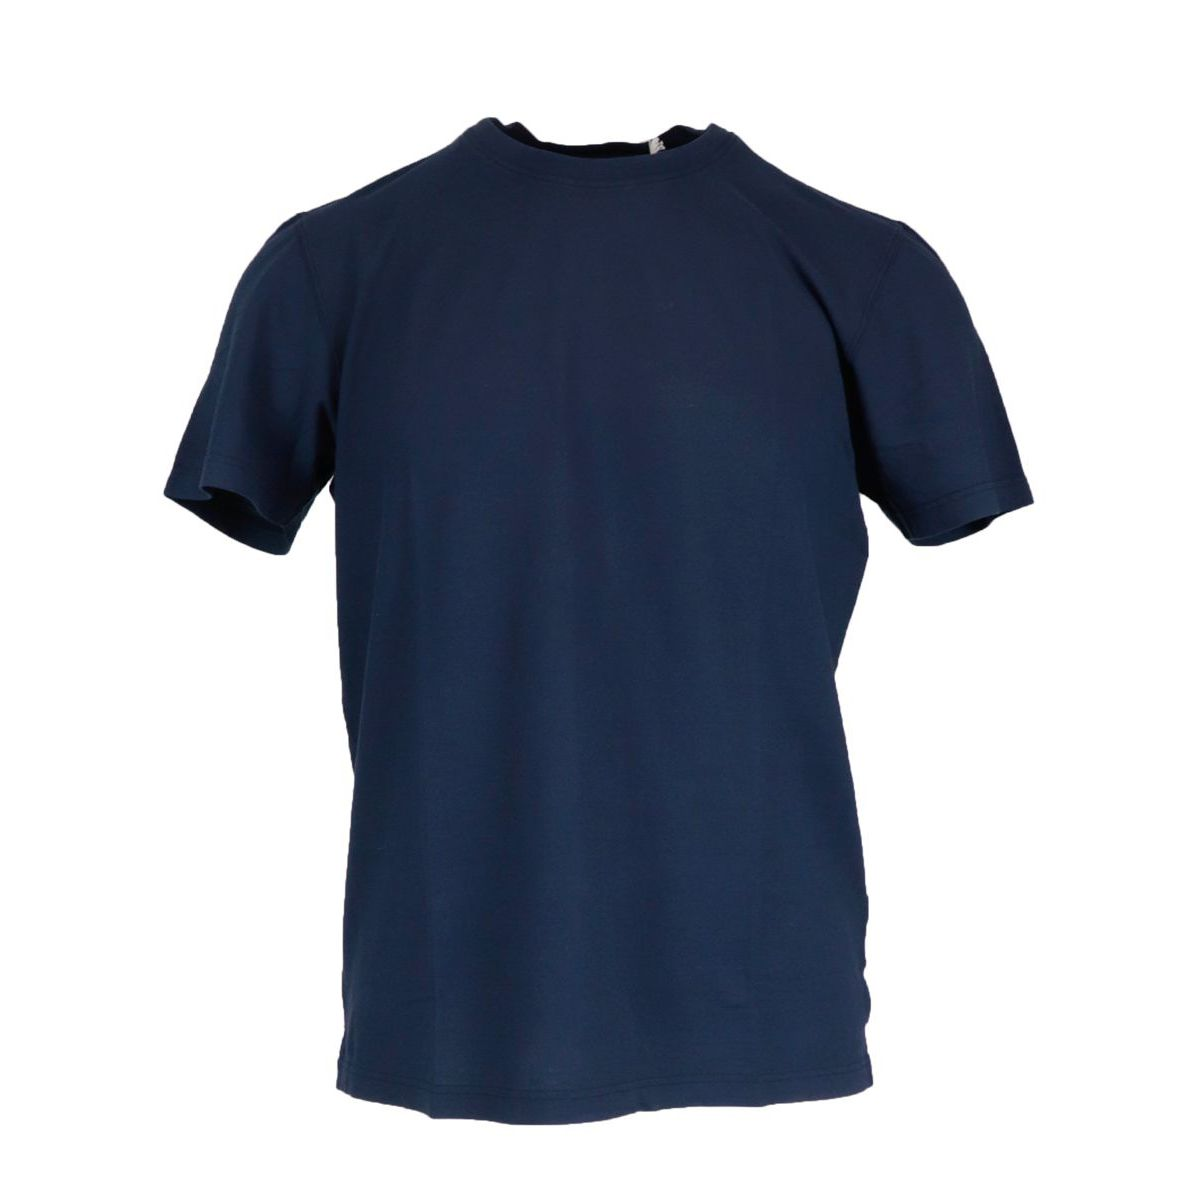 Crew neck t-shirt in ice cotton Blue Gran Sasso